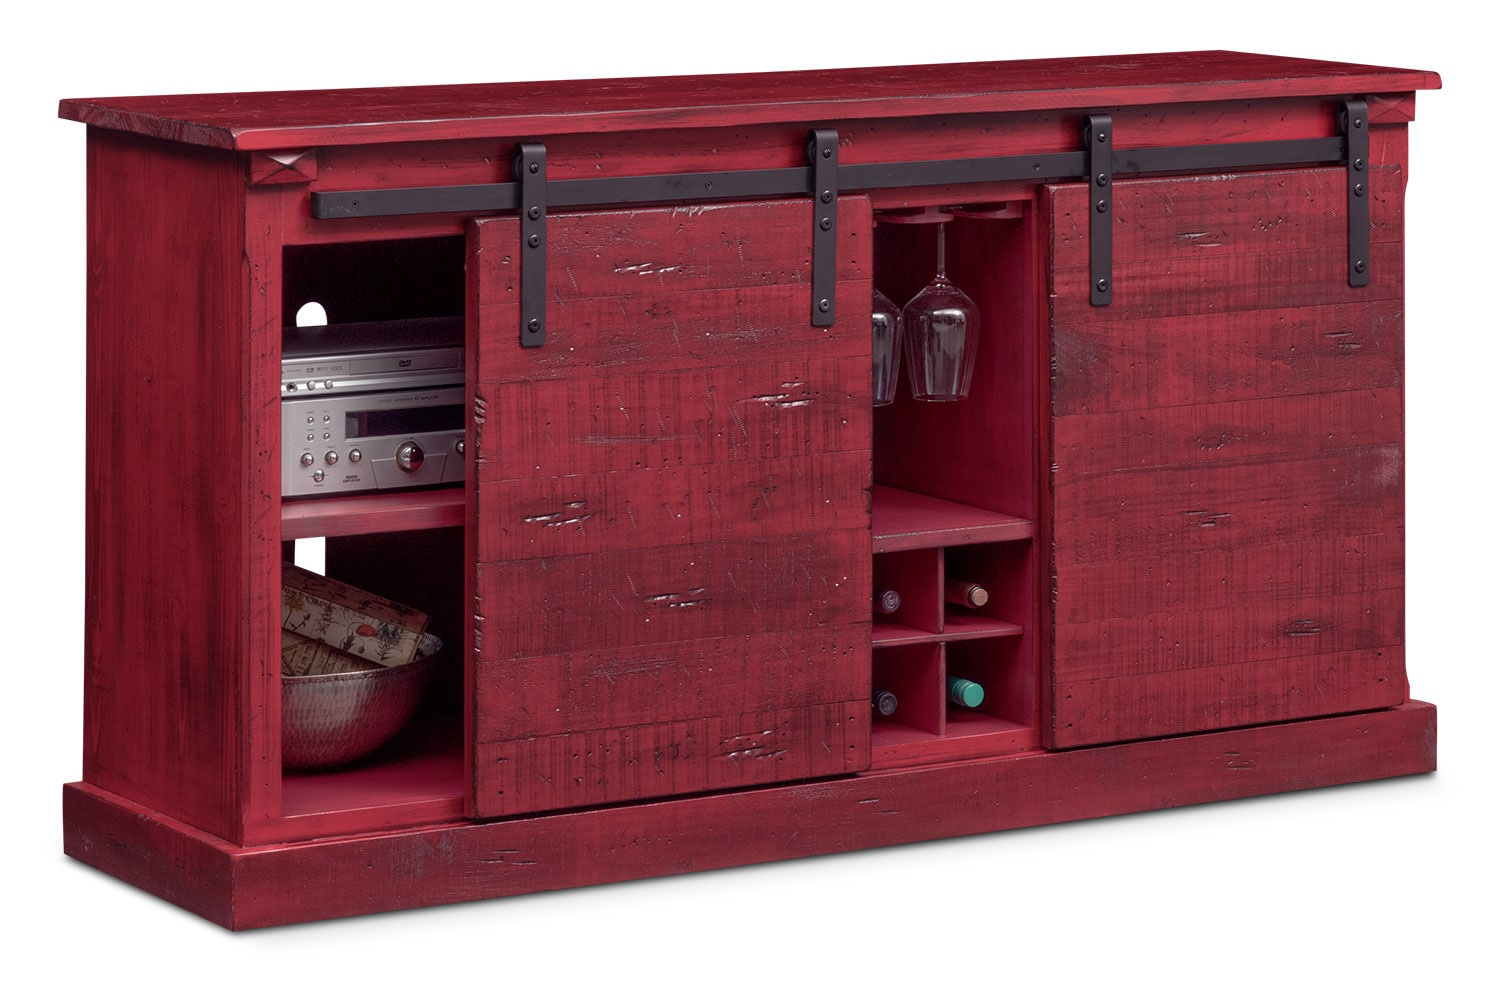 Sofas In Value City Furniture Ashcroft Media Credenza With Wine Storage - Red | Value